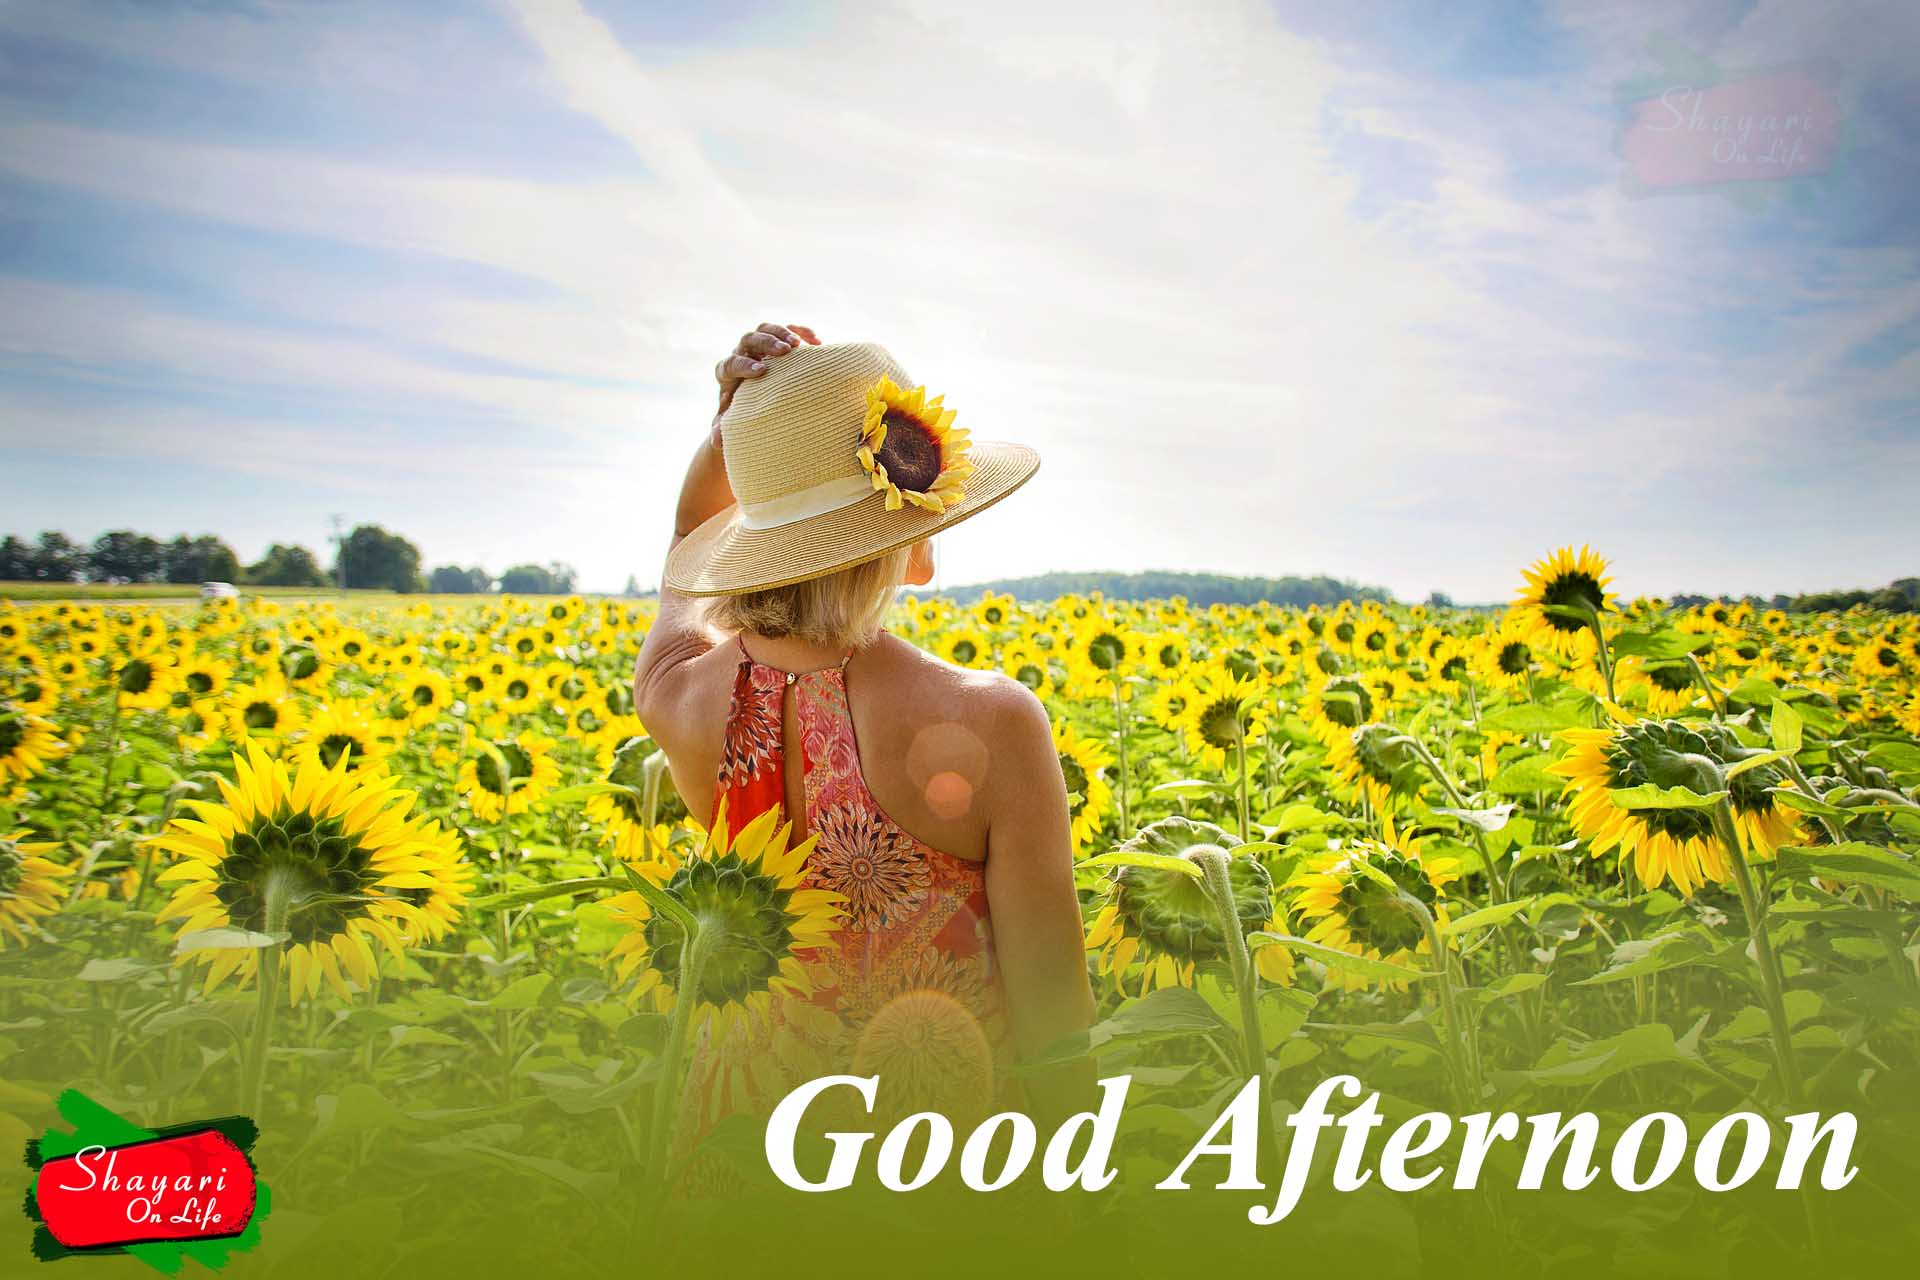 Good Afternoon QuotesWishesMessage With ImagesPhotos 999 New 1920x1280